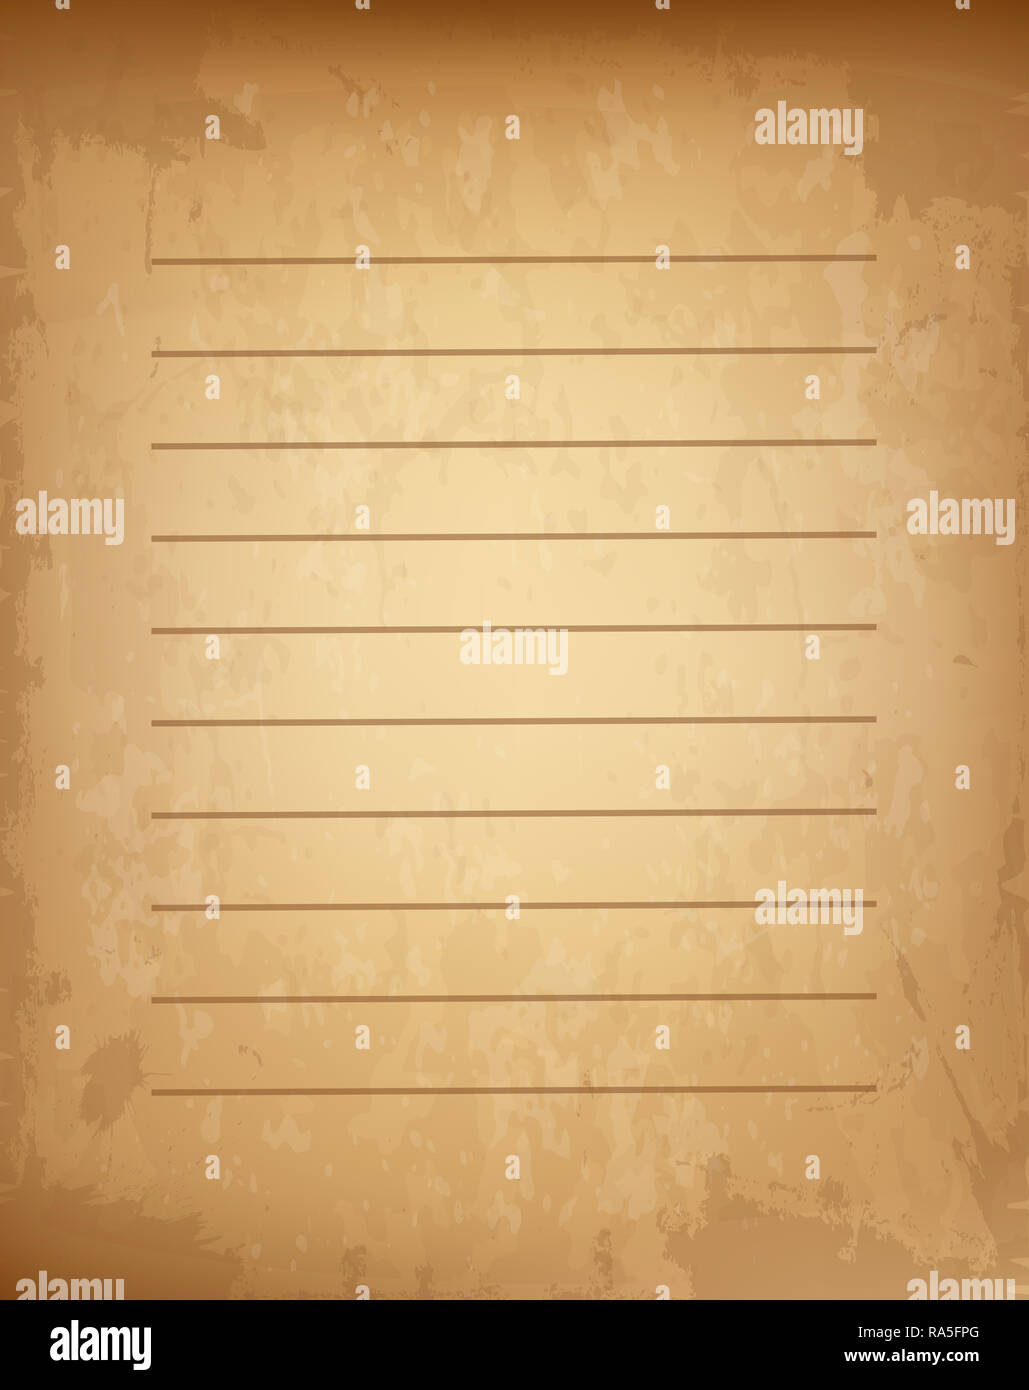 Old Grungy Vintage Lined Blank Worn Template For Mail